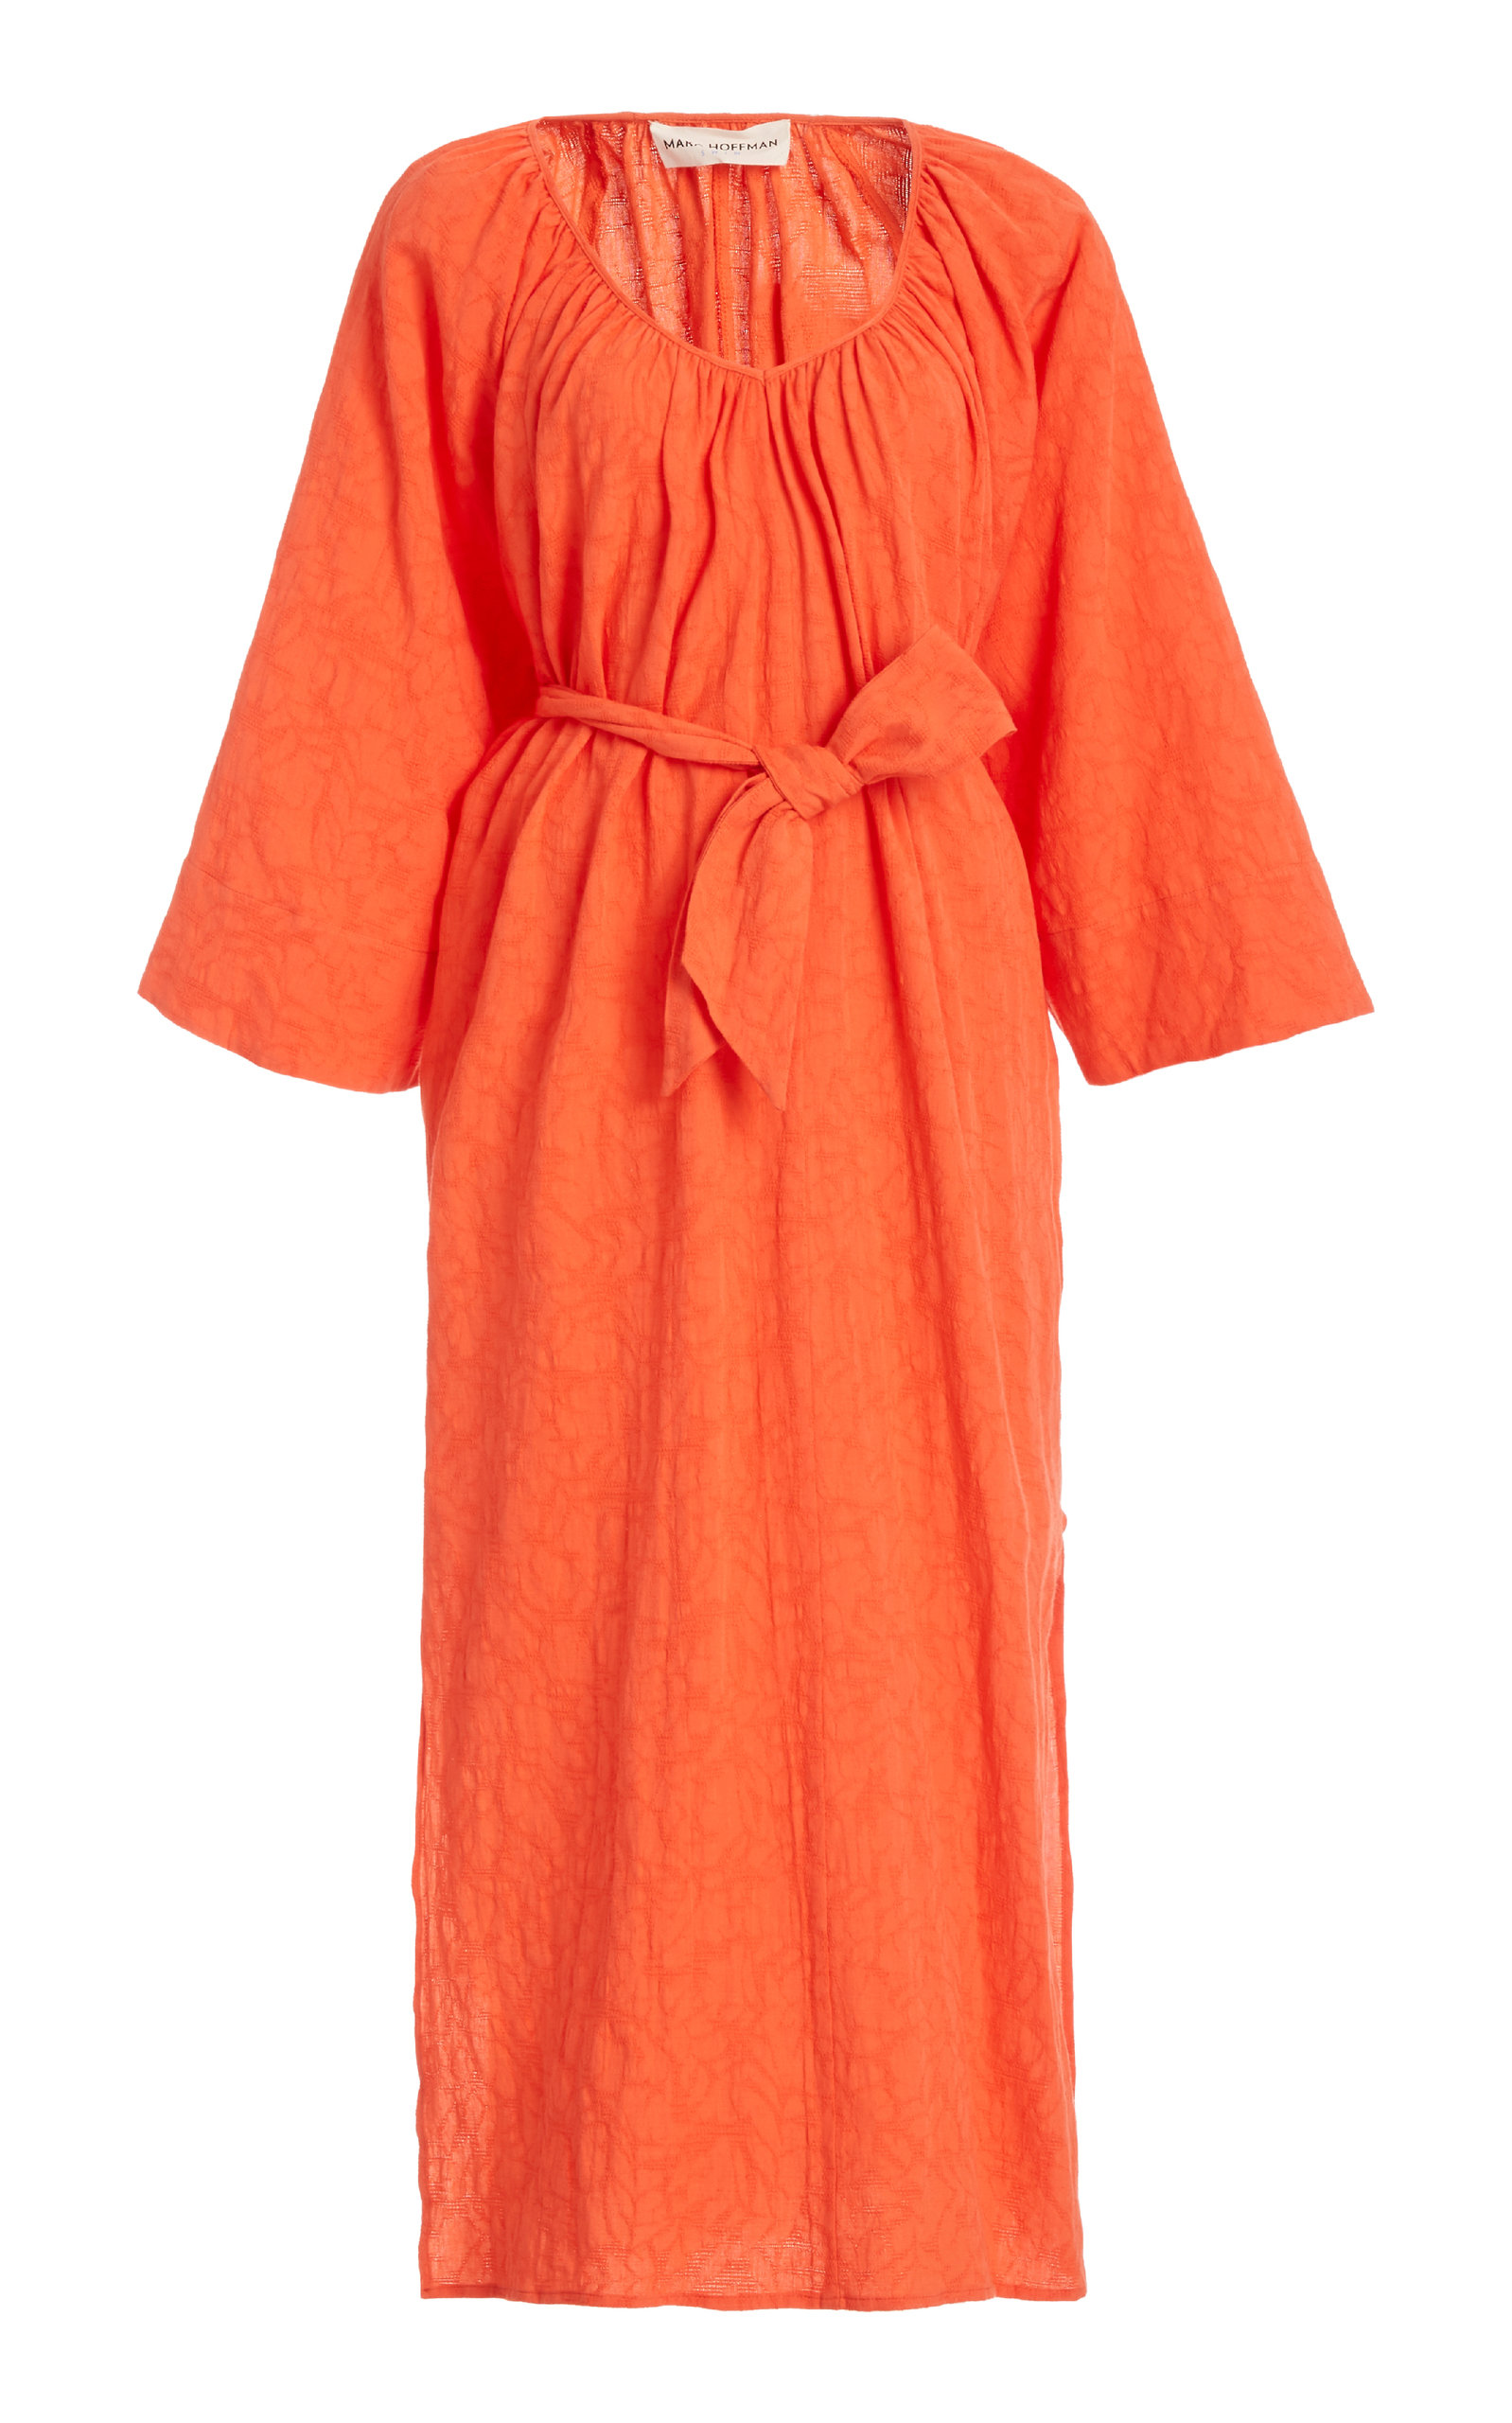 Buy Mara Hoffman Luz Belted Cotton and Linen-Blend Midi Dress online, shop Mara Hoffman at the best price